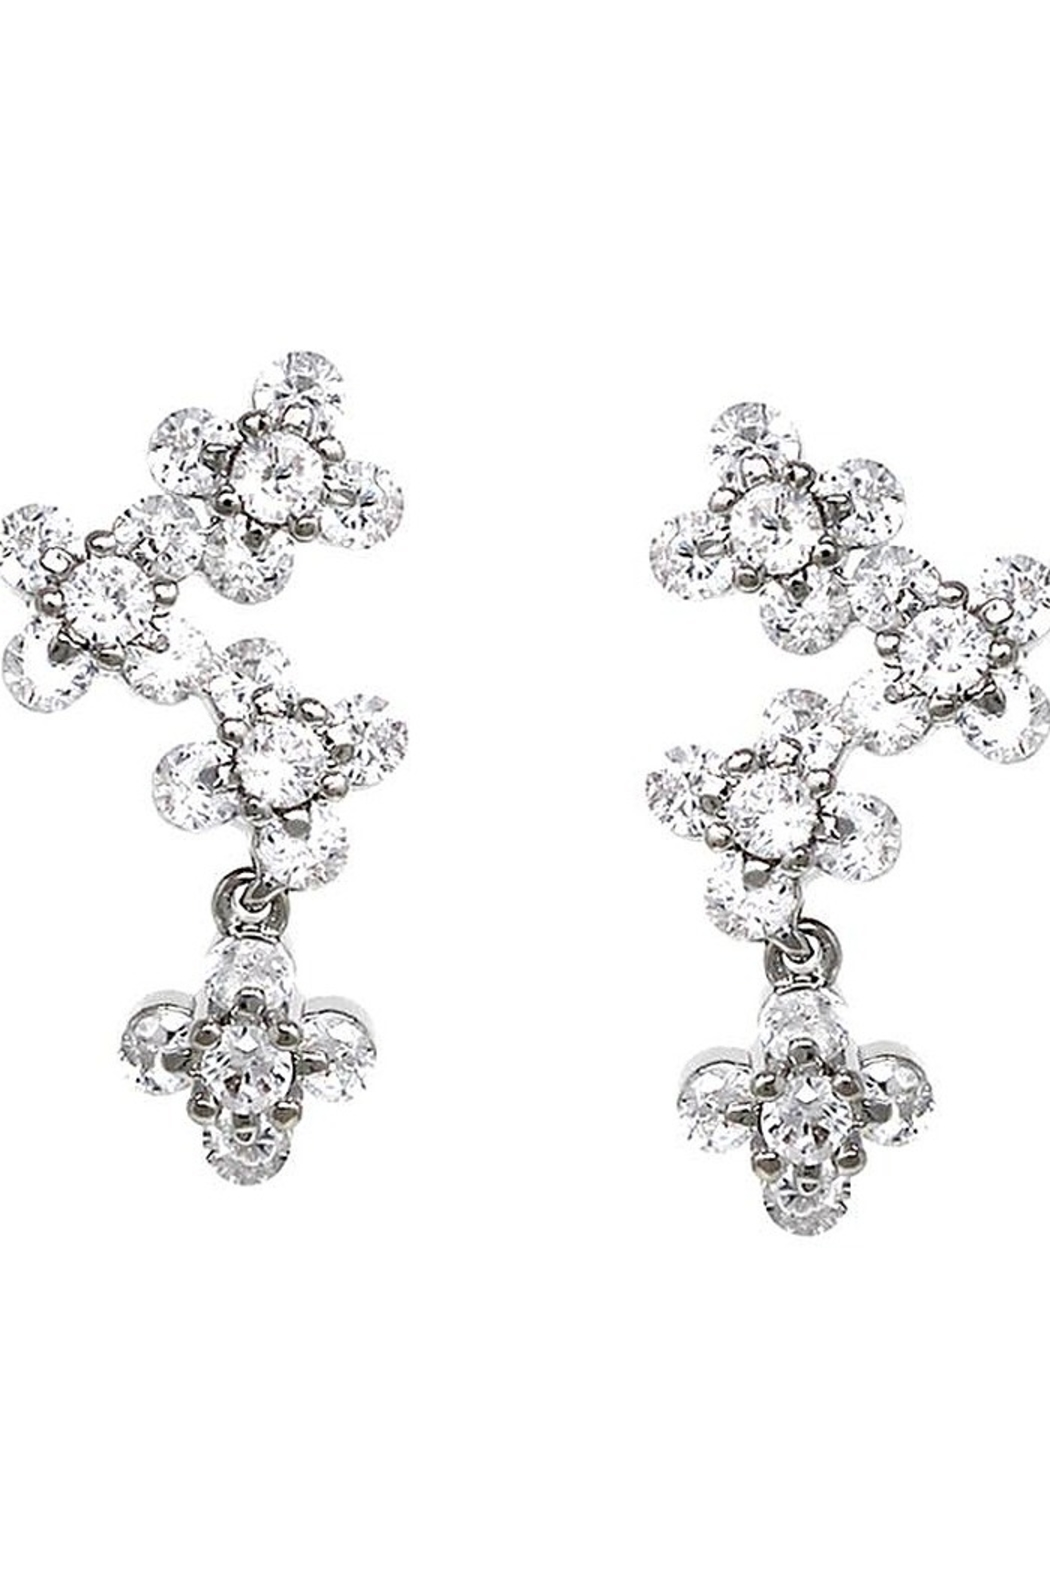 US Jewelry House Flower Pave Earrings - Main Image